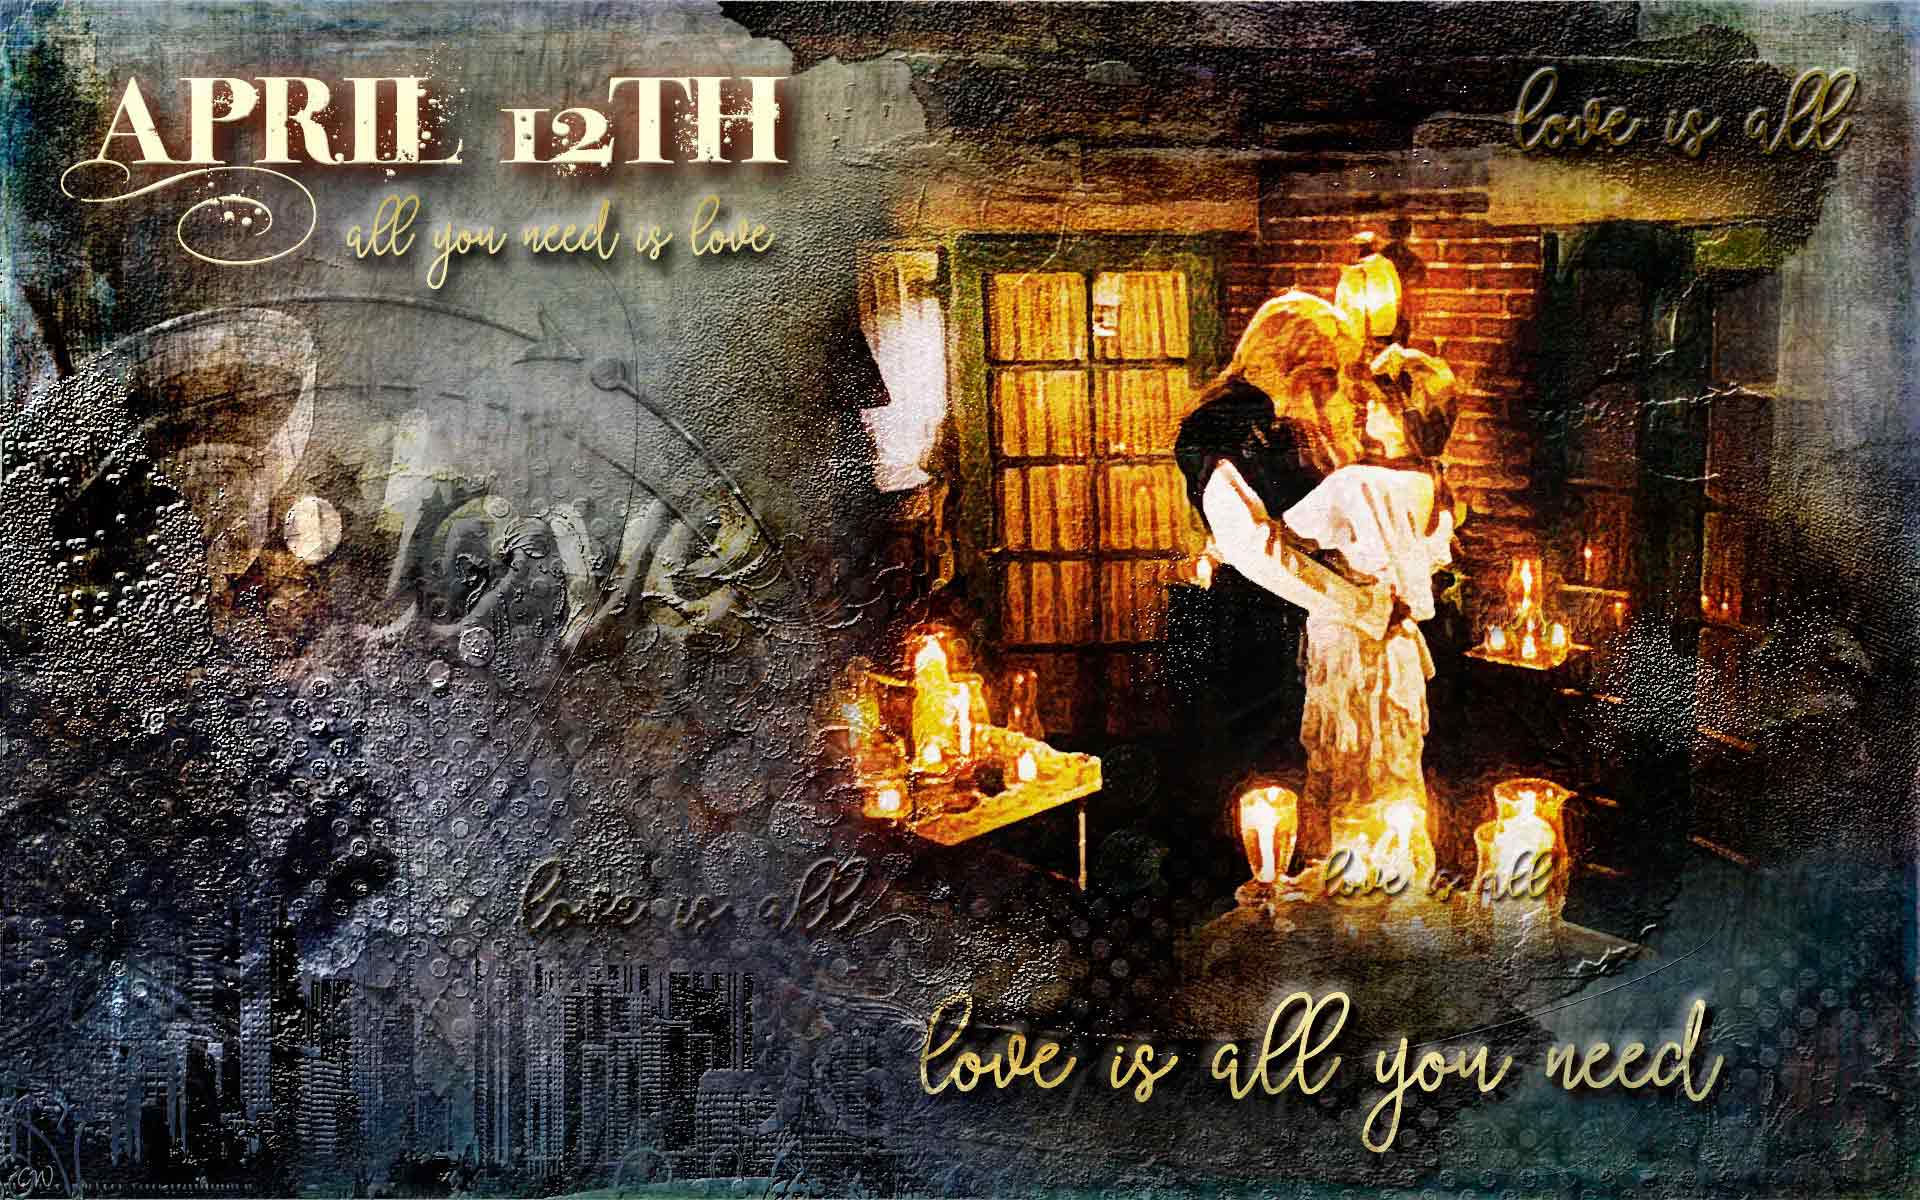 April 12th celebration. Vincent and Catherine in an embrace on her candlelit balcony. Text reads: April 12th. Love is all you need.